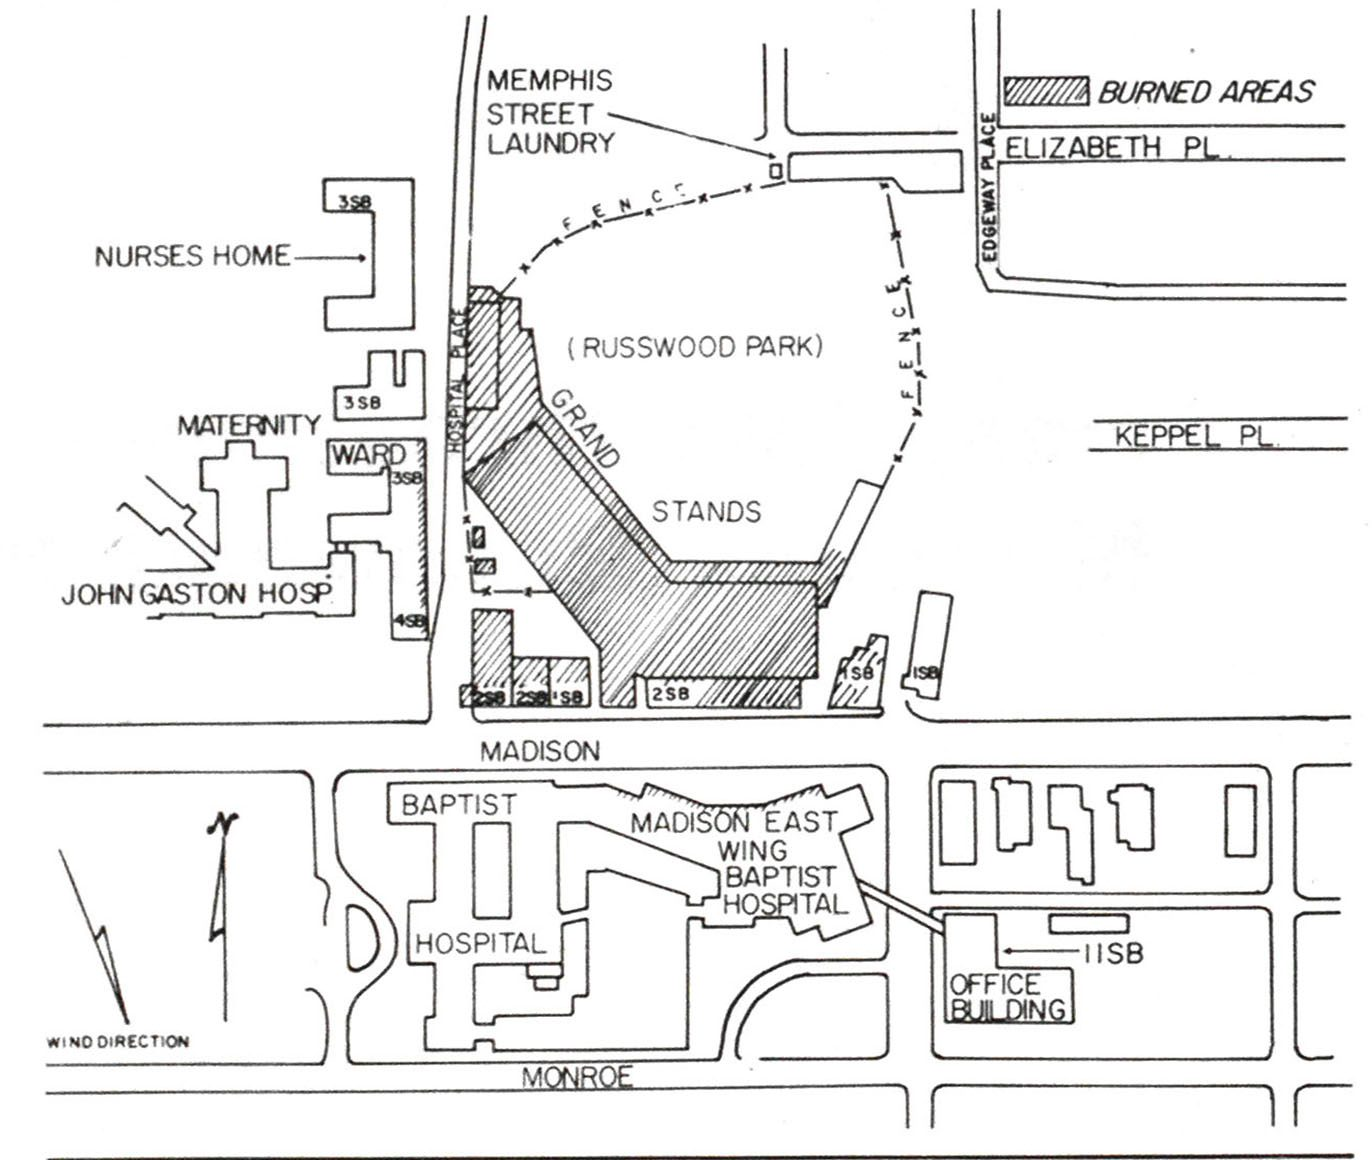 Diagram of fire ground. Crosshatching indicates burned areas